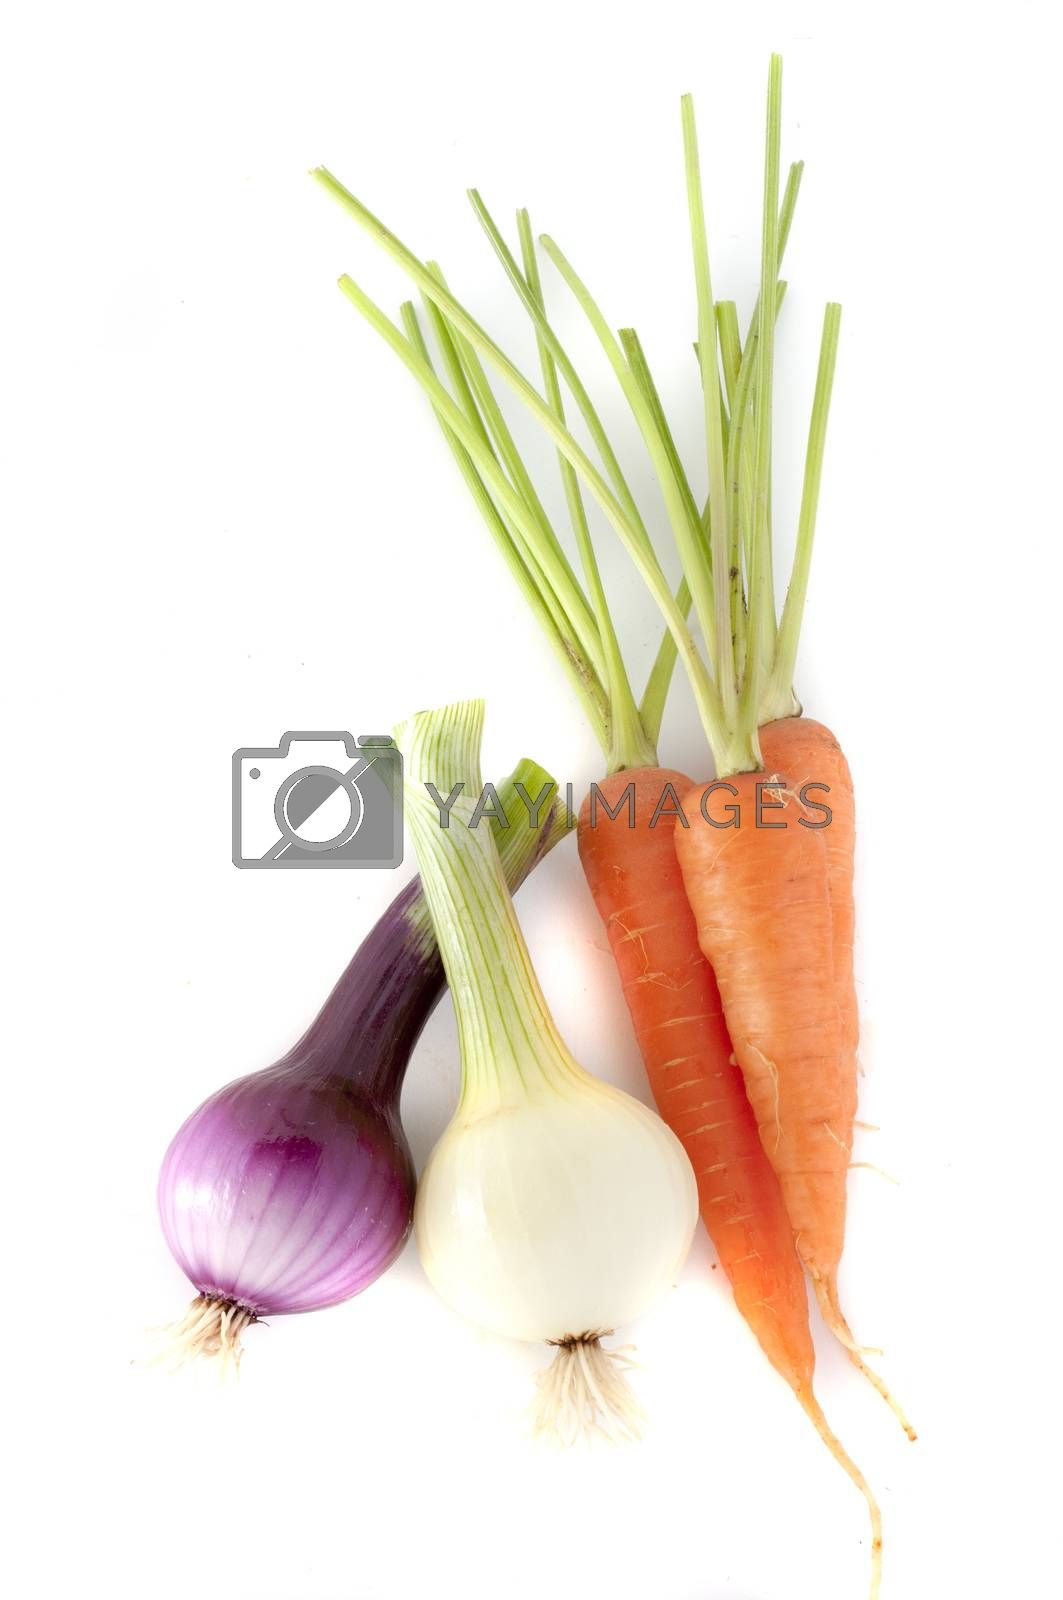 Carrot and onion by Almir